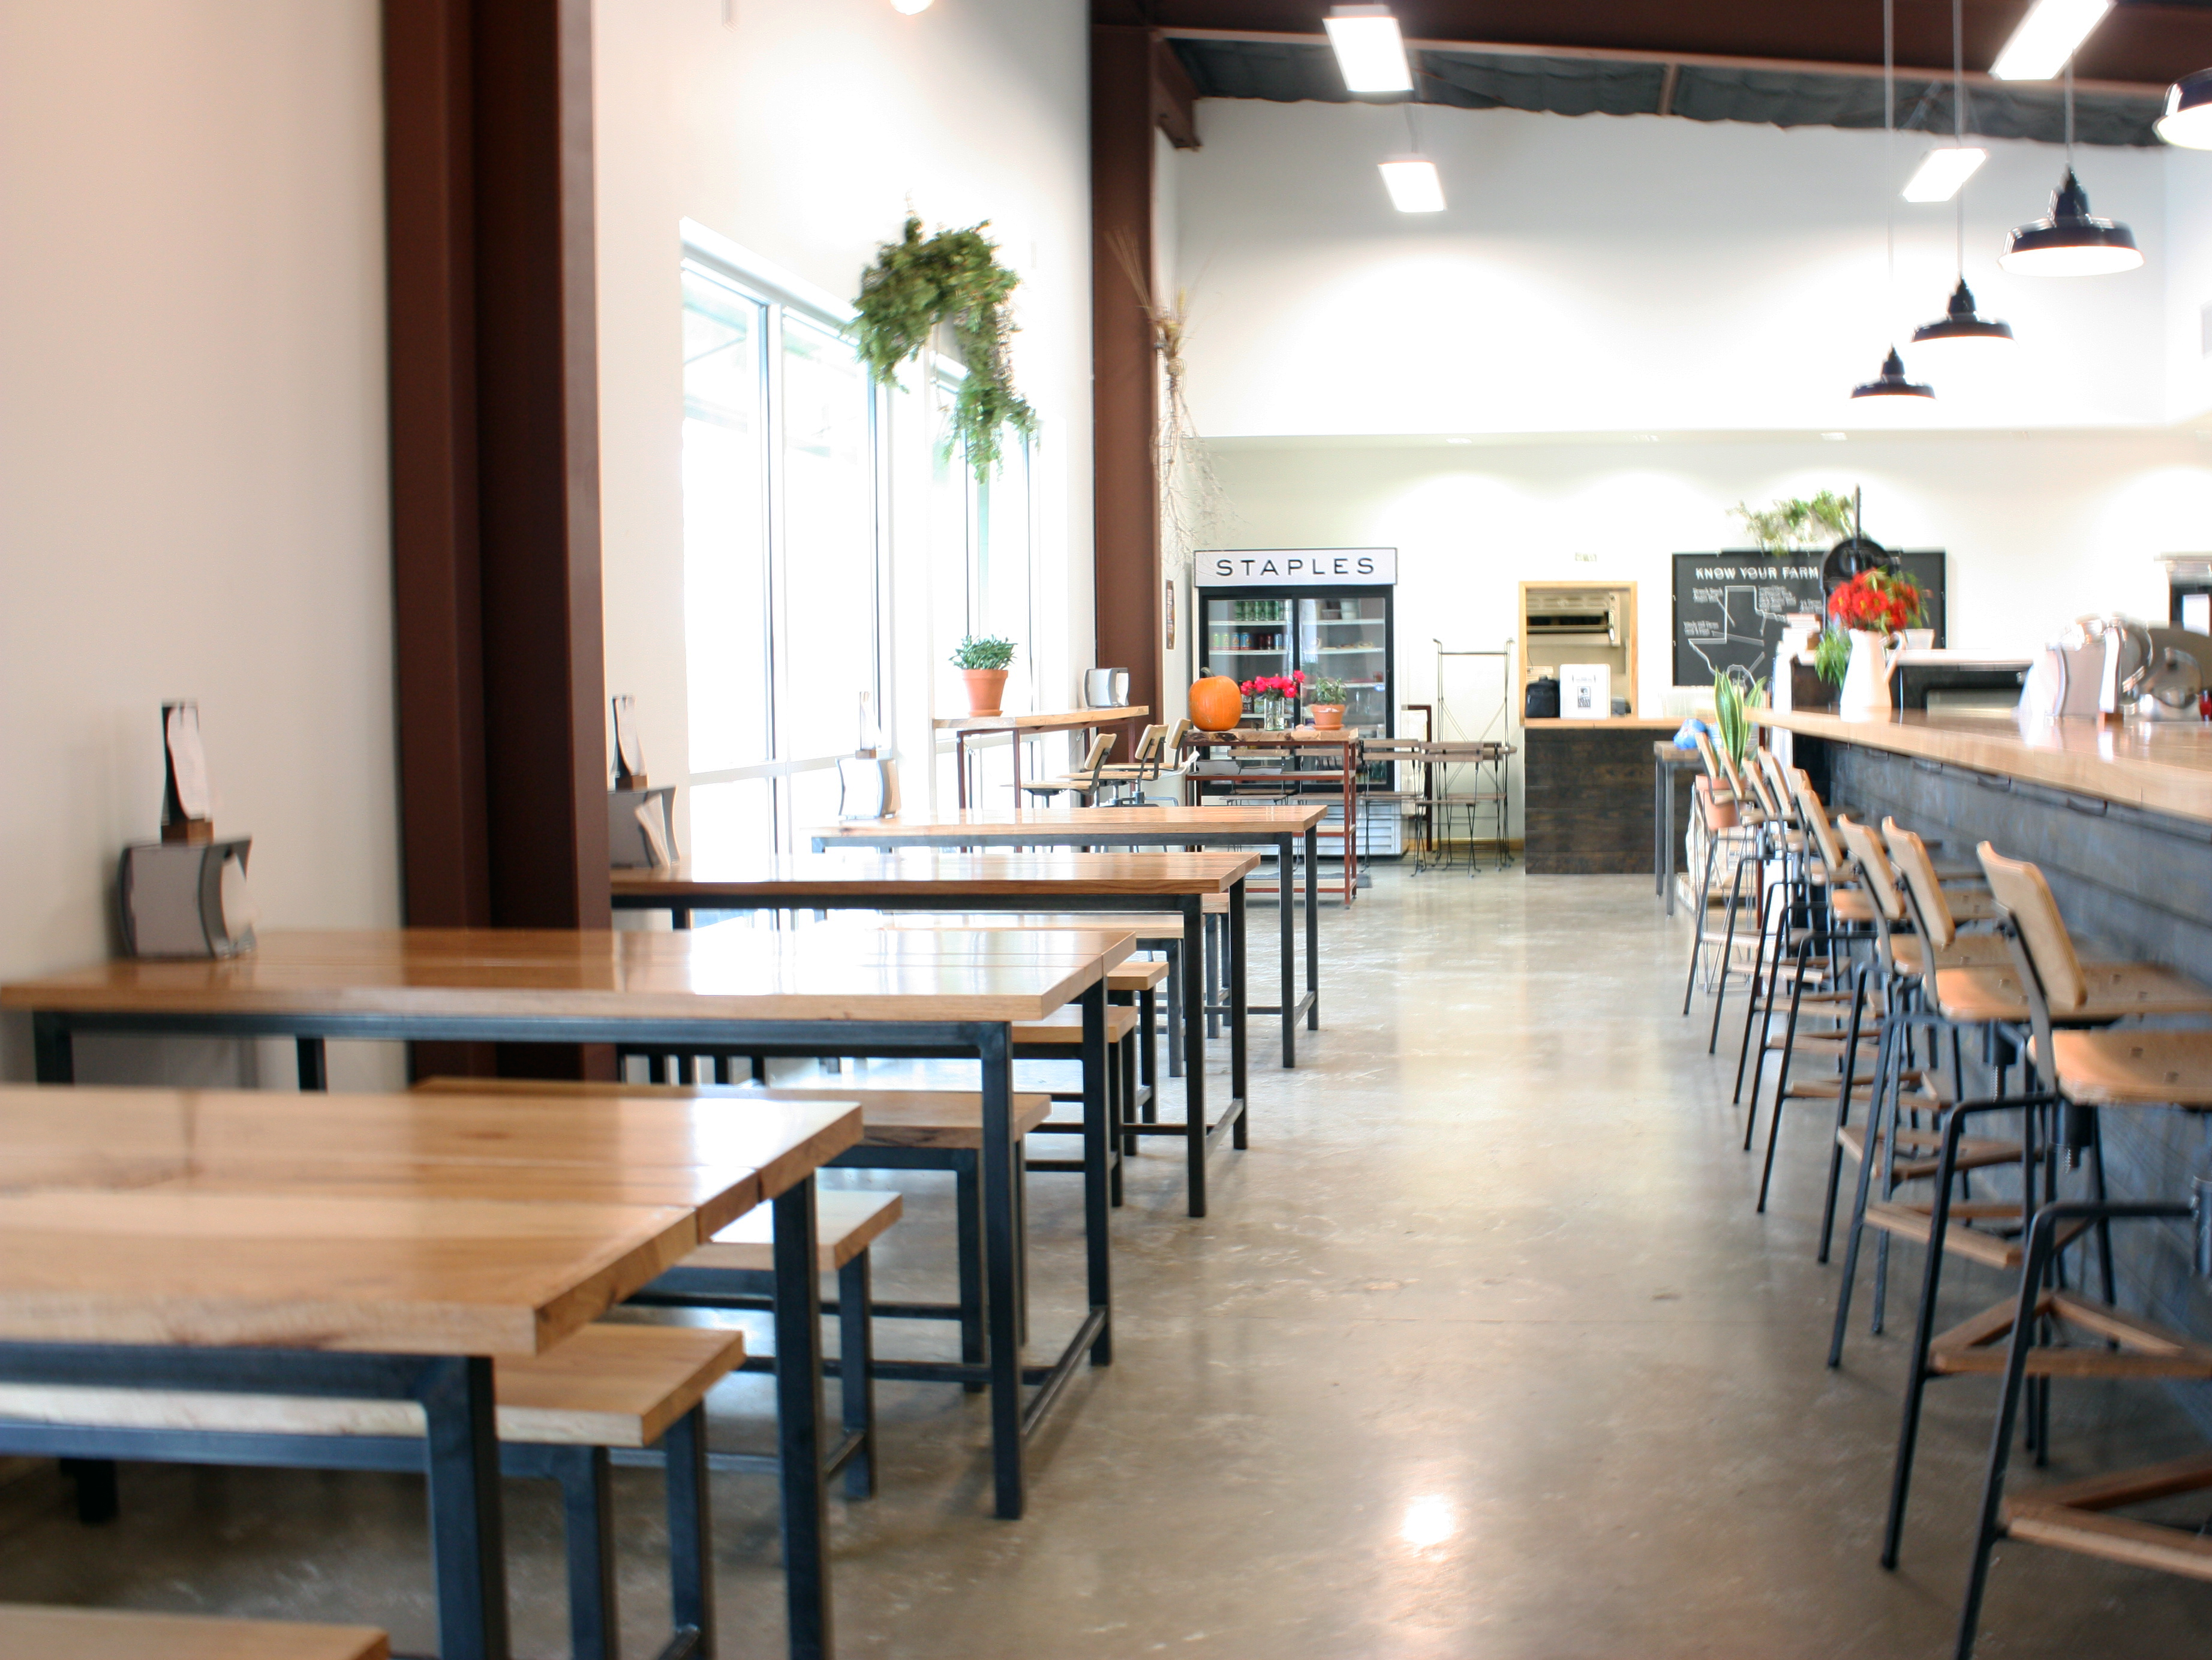 stools and tables 4.jpg